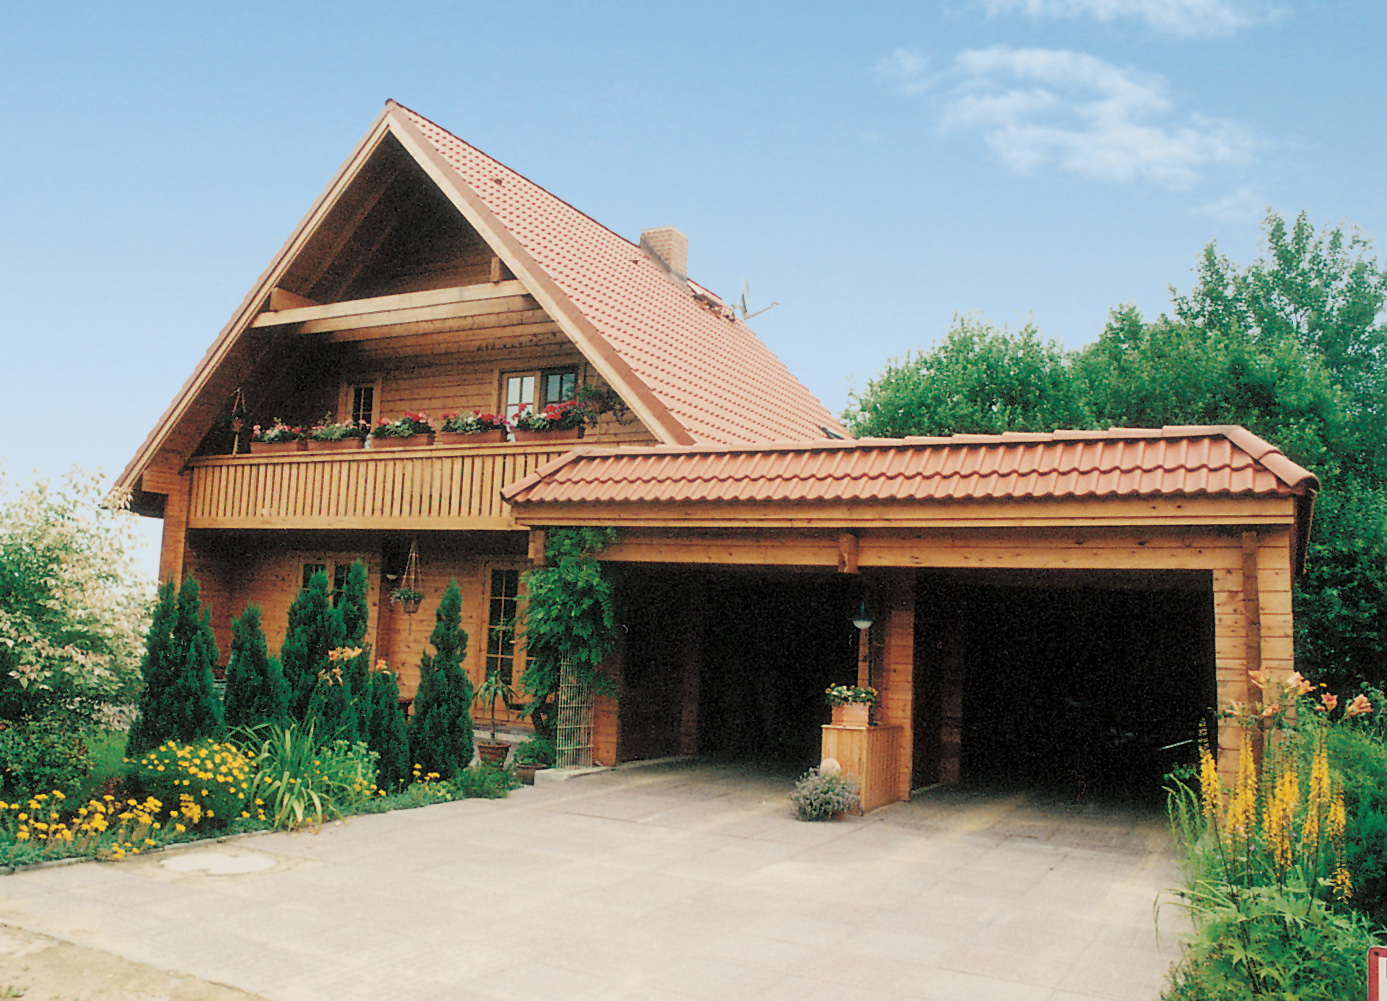 Euro 139 Wooden home